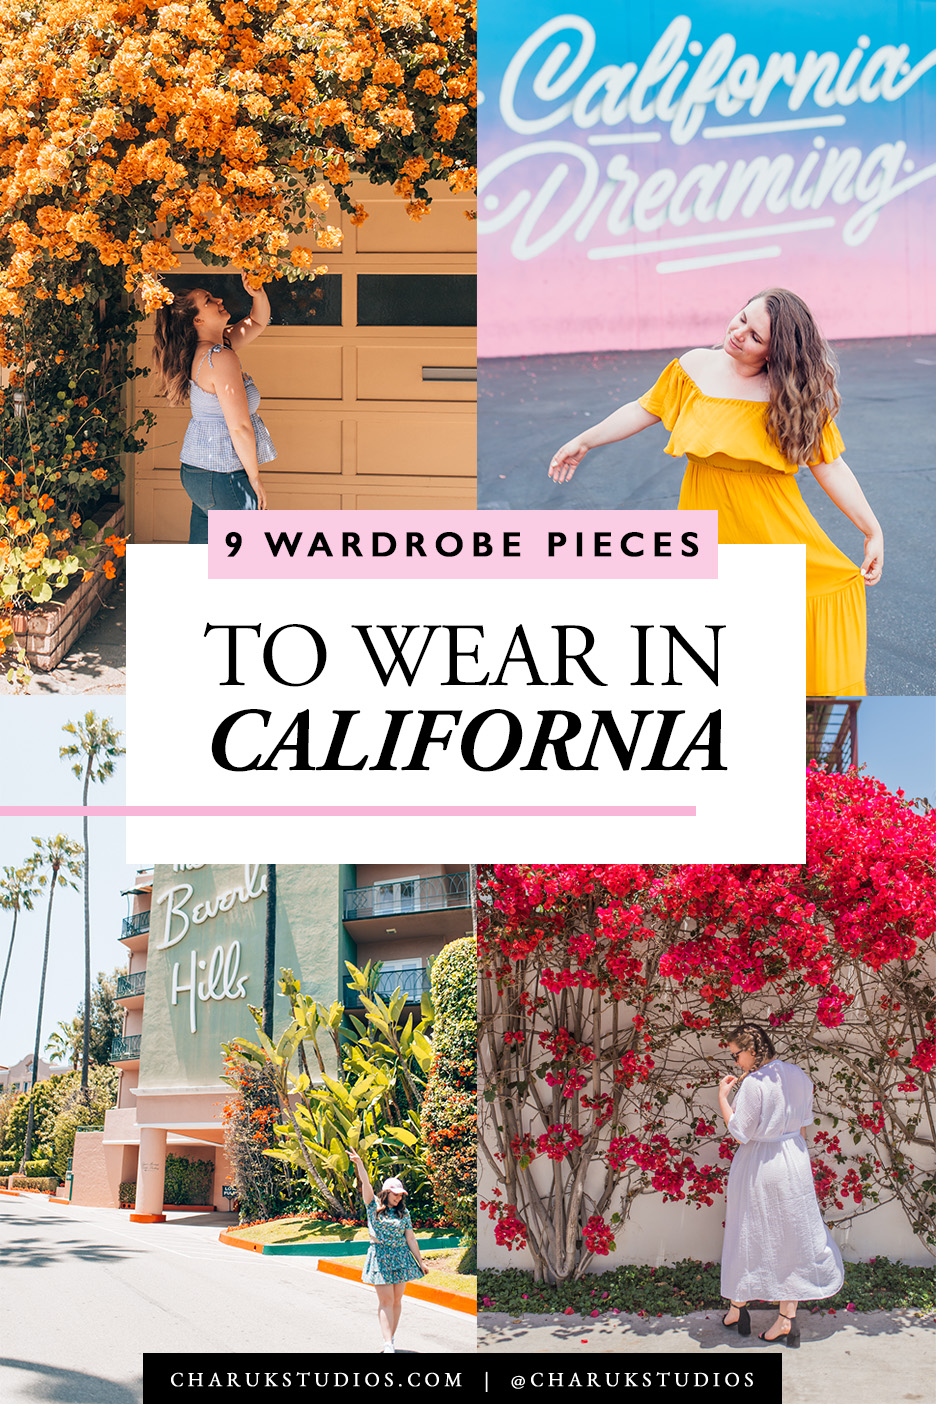 9 Wardrobe Pieces to Wear in California by Charuk Studios